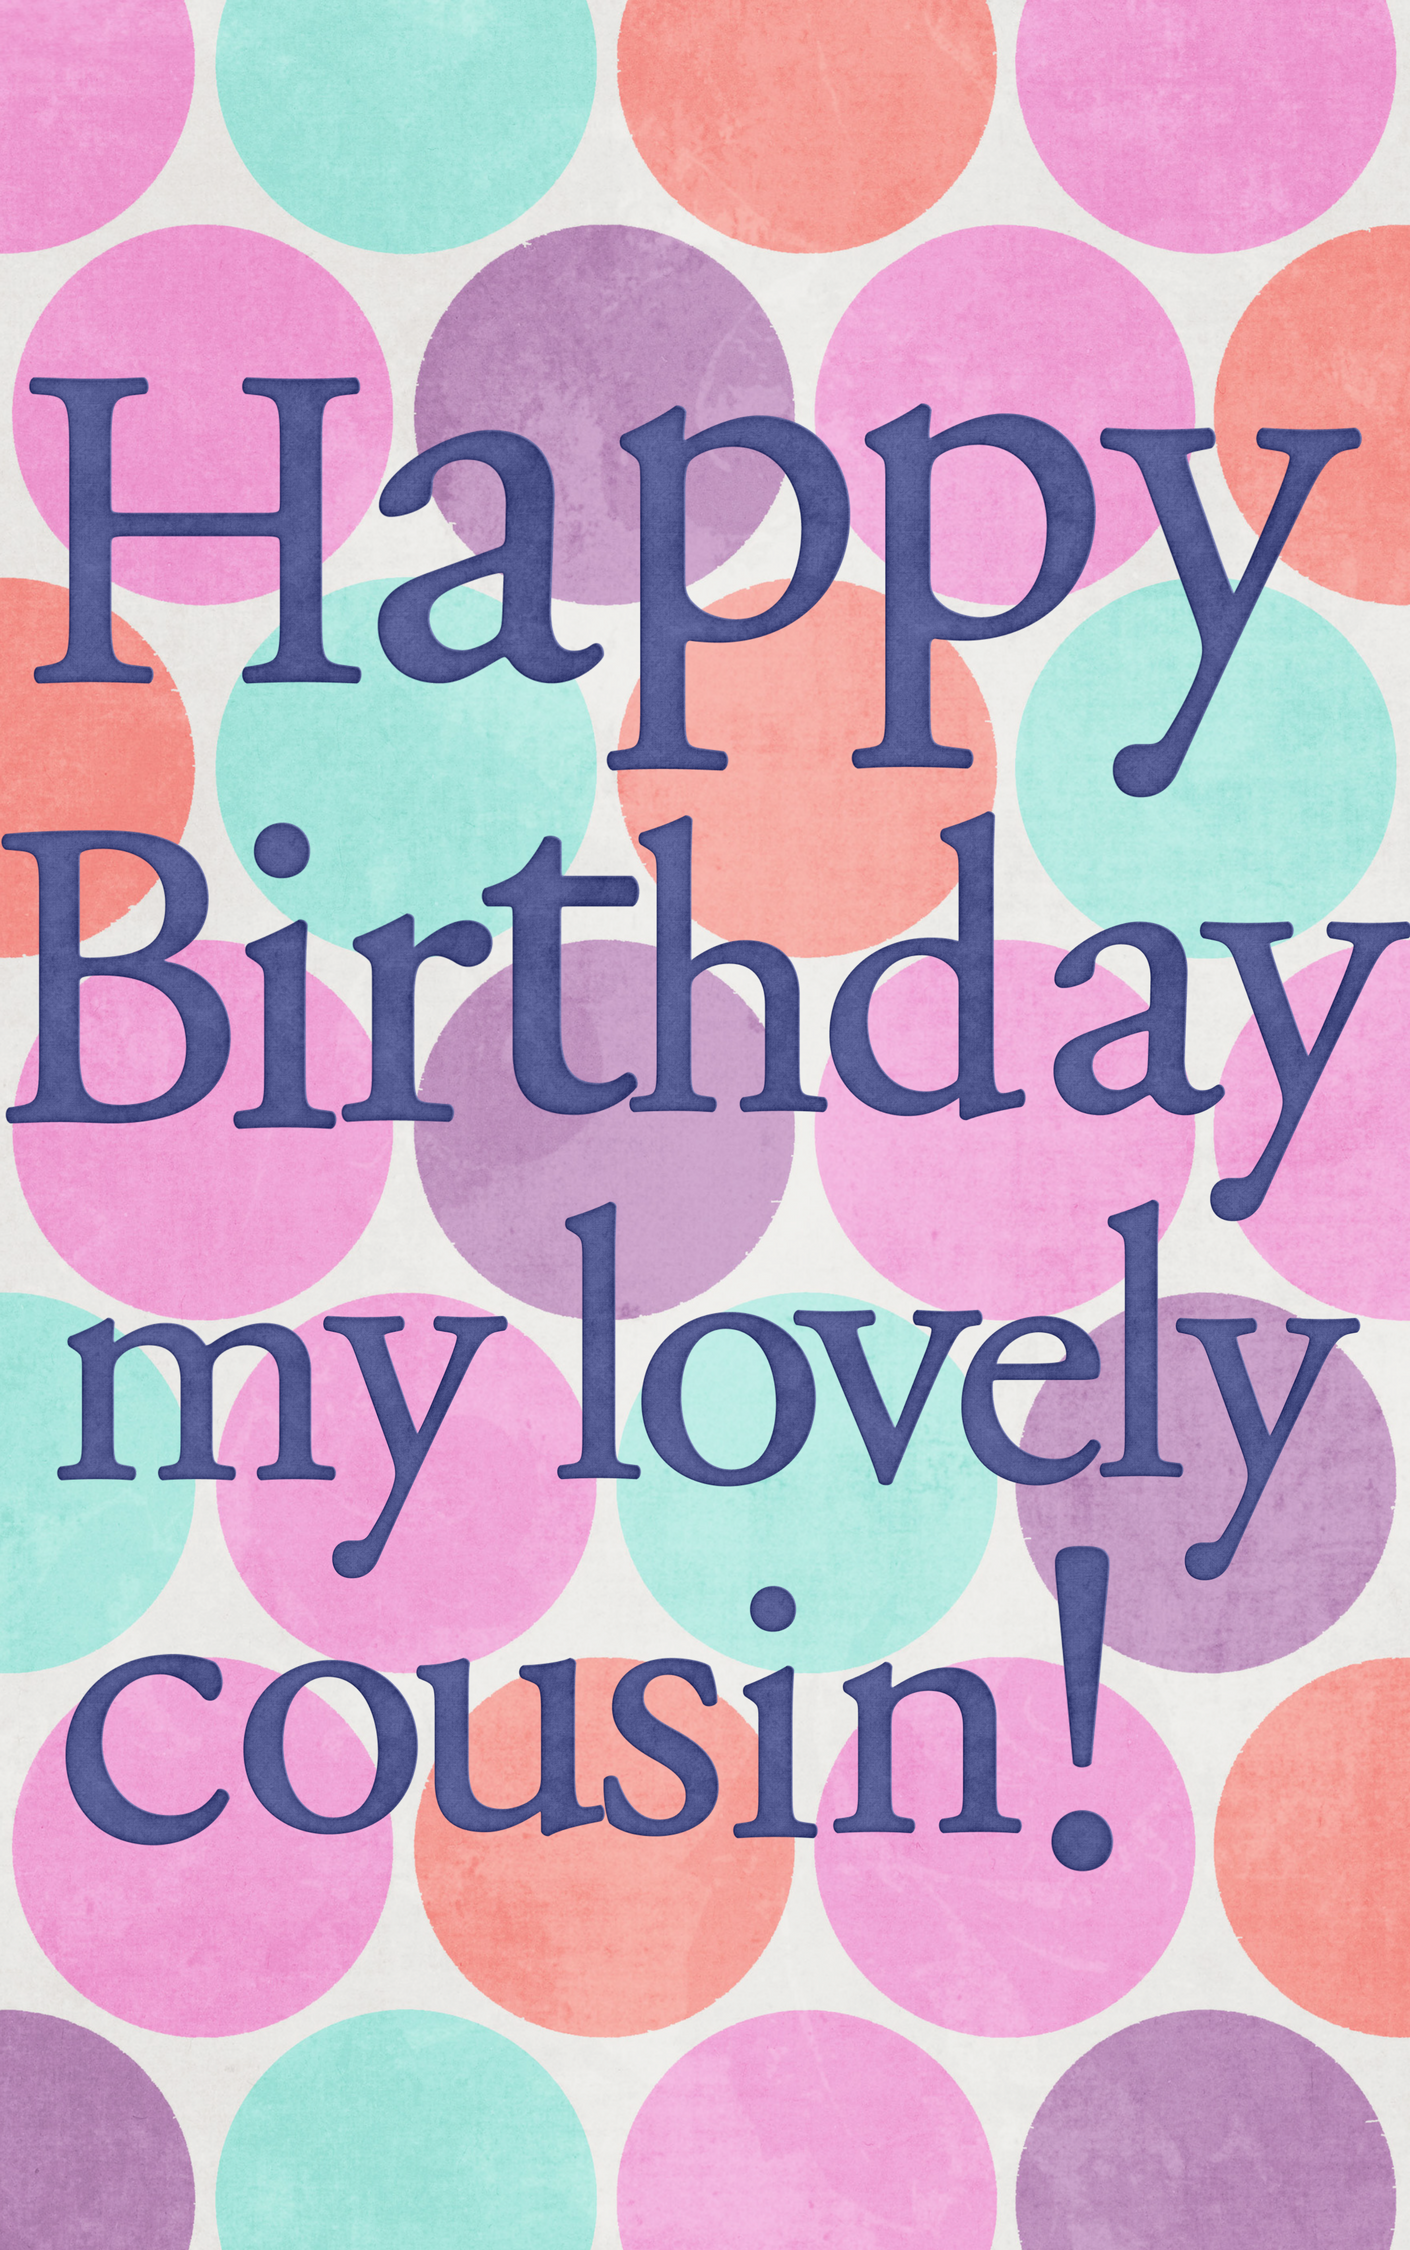 cousin birthday images Happy Birthday my lovely cousin! | Happy birthday | Pinterest  cousin birthday images